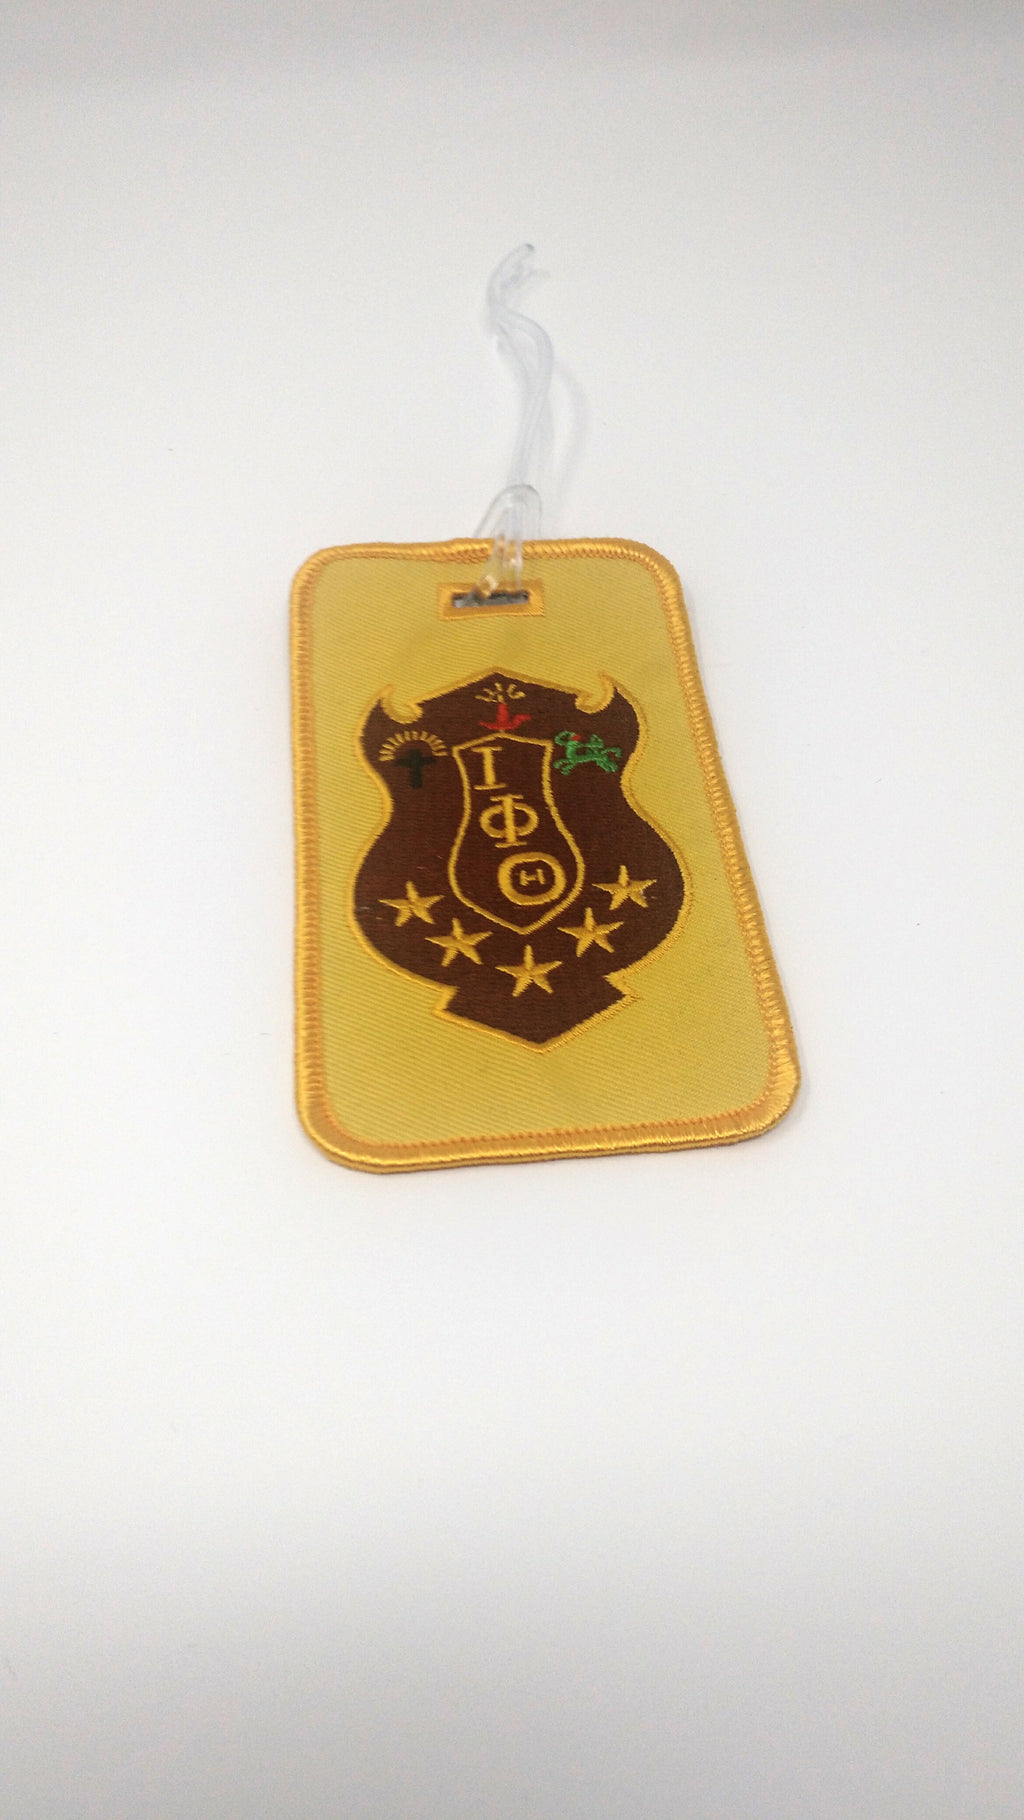 This Iota Phi Theta embroidered shield luggage tag is the perfect travel mate. Shield on one side and clear pocket on other side for identification.